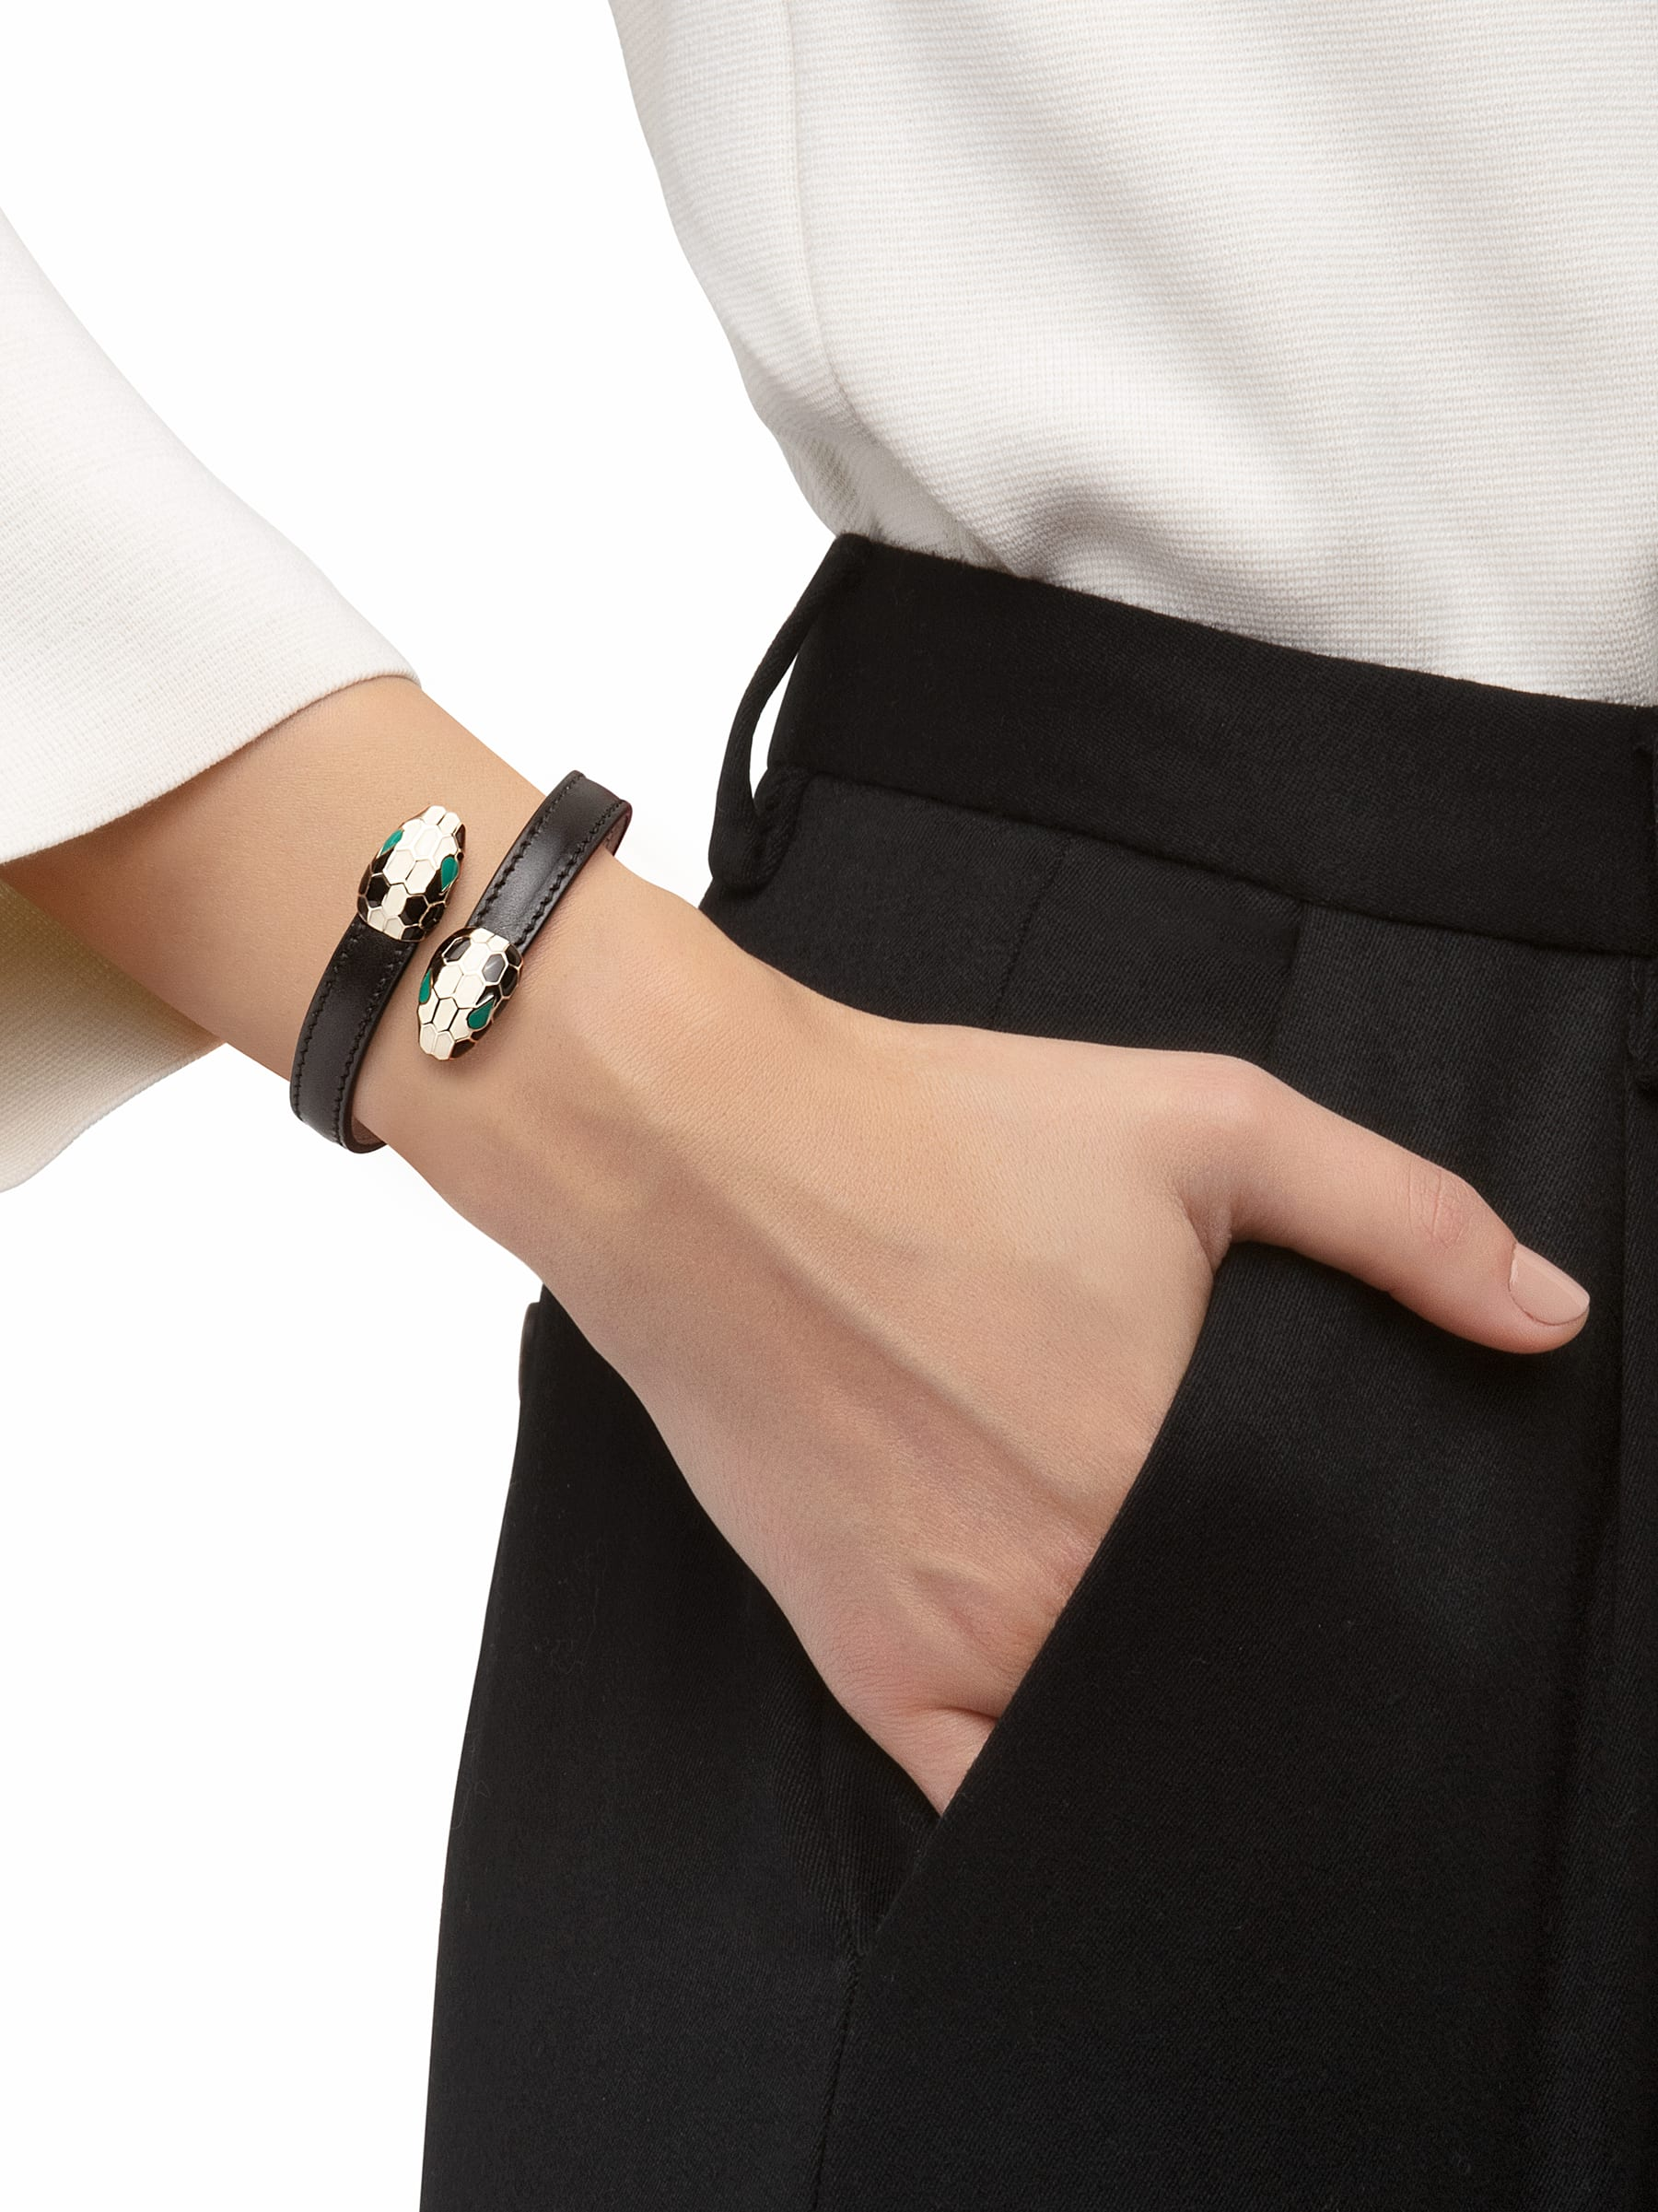 Serpenti Forever soft bangle bracelet in black calf leather, with brass light gold plated hardware. Iconic contraire snakehead décor in black and white enamel, with green enamel eyes. SerpSoftContr-CL-B image 2